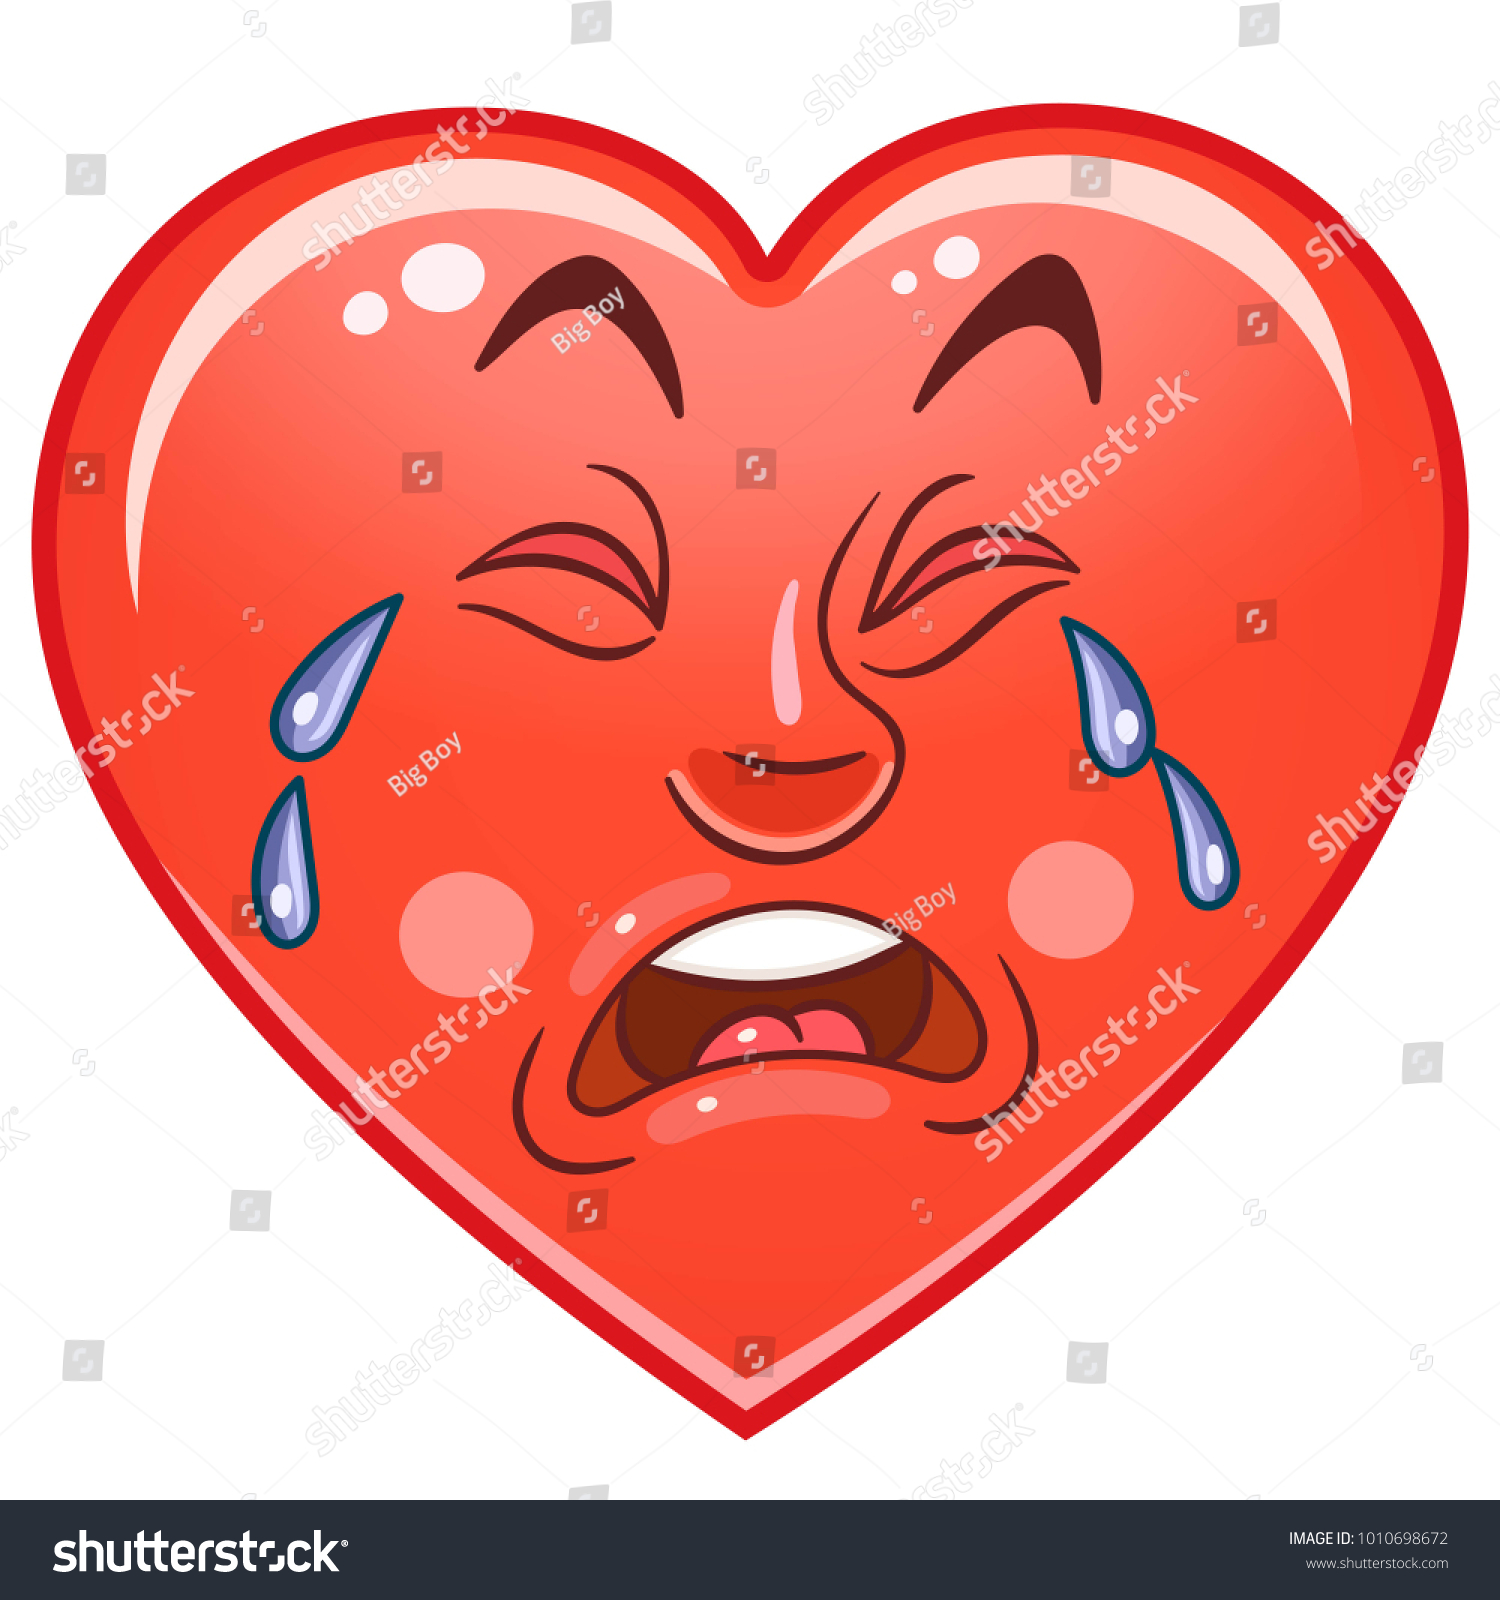 Cartoon Red Lonely Heart Crying Emoticons Stock Vector Royalty Free